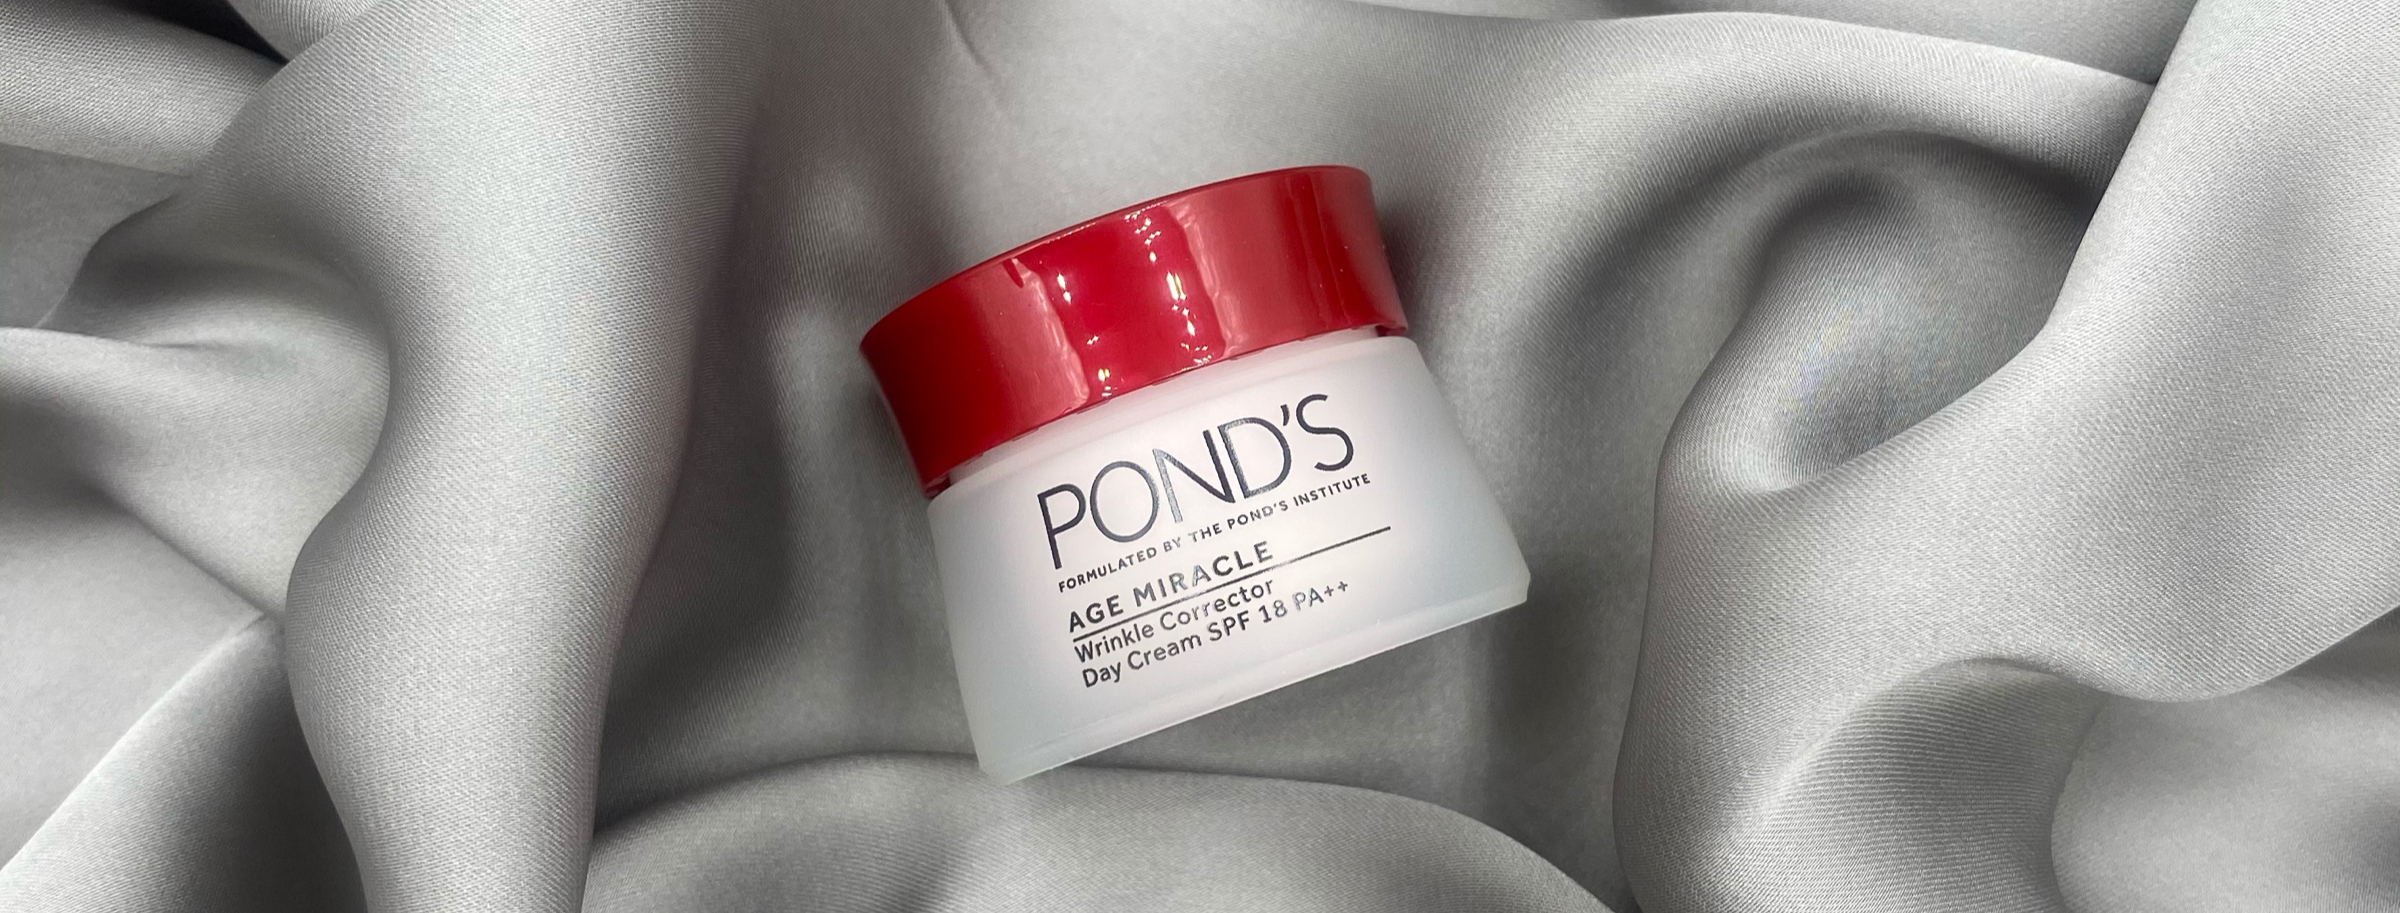 REVIEW | Pond's Age Miracle Wrinkle Corrector Day Cream SPF18 PA++